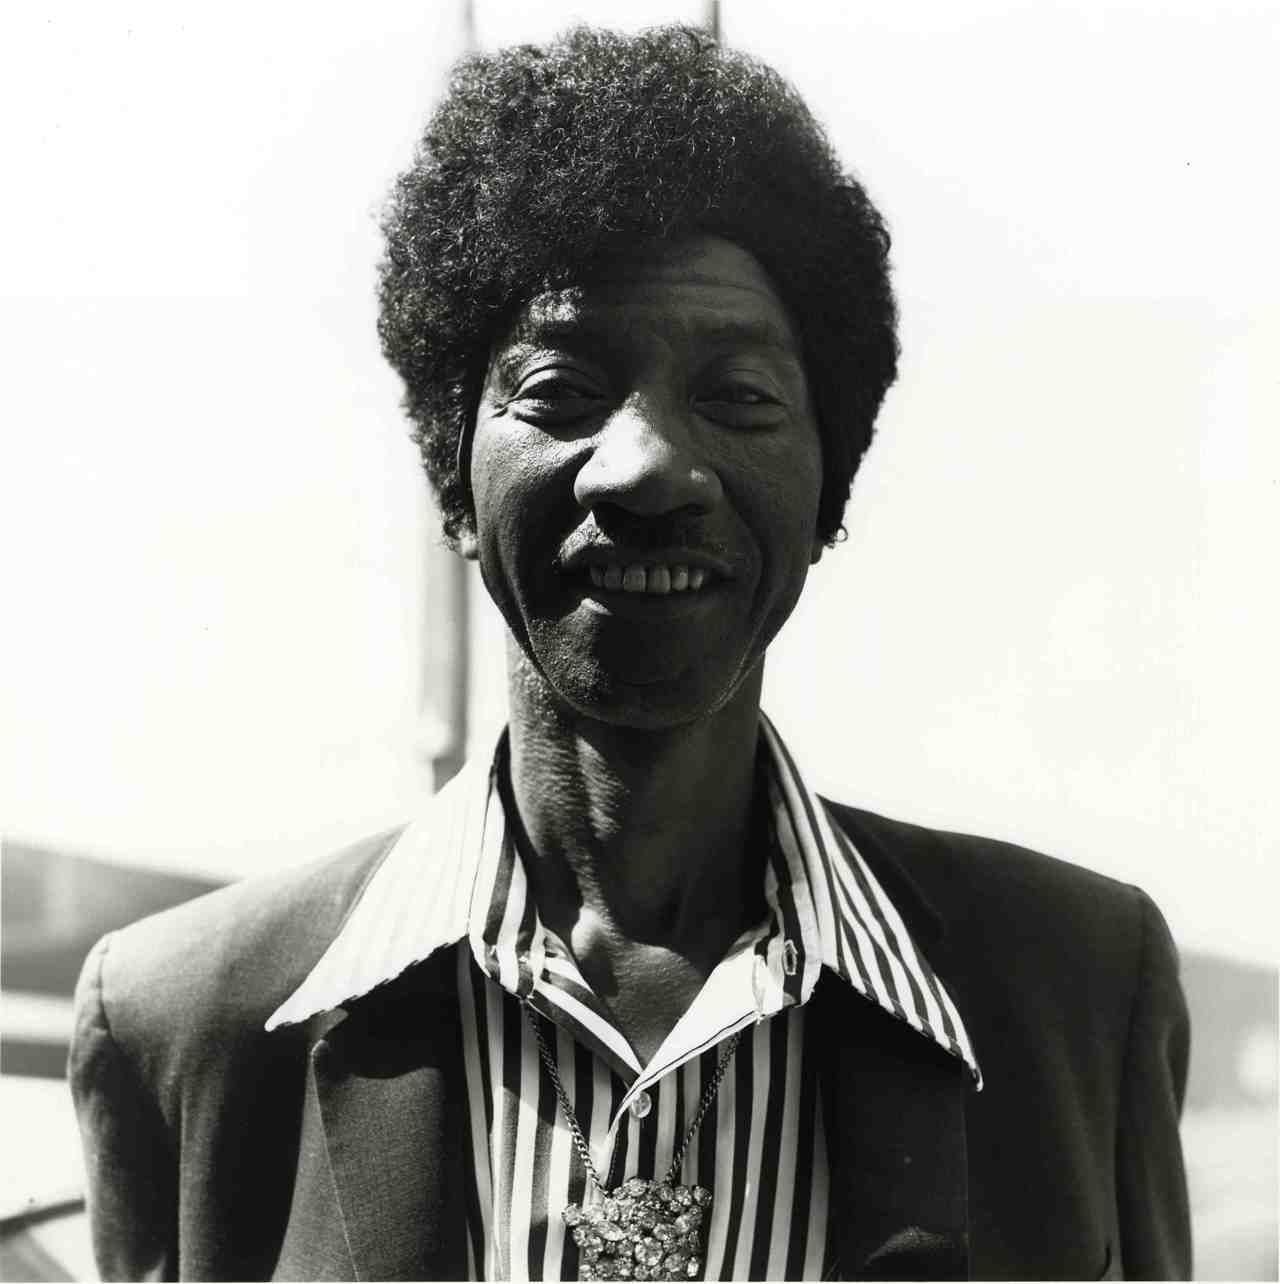 psychedelicway: Hound Dog Taylor